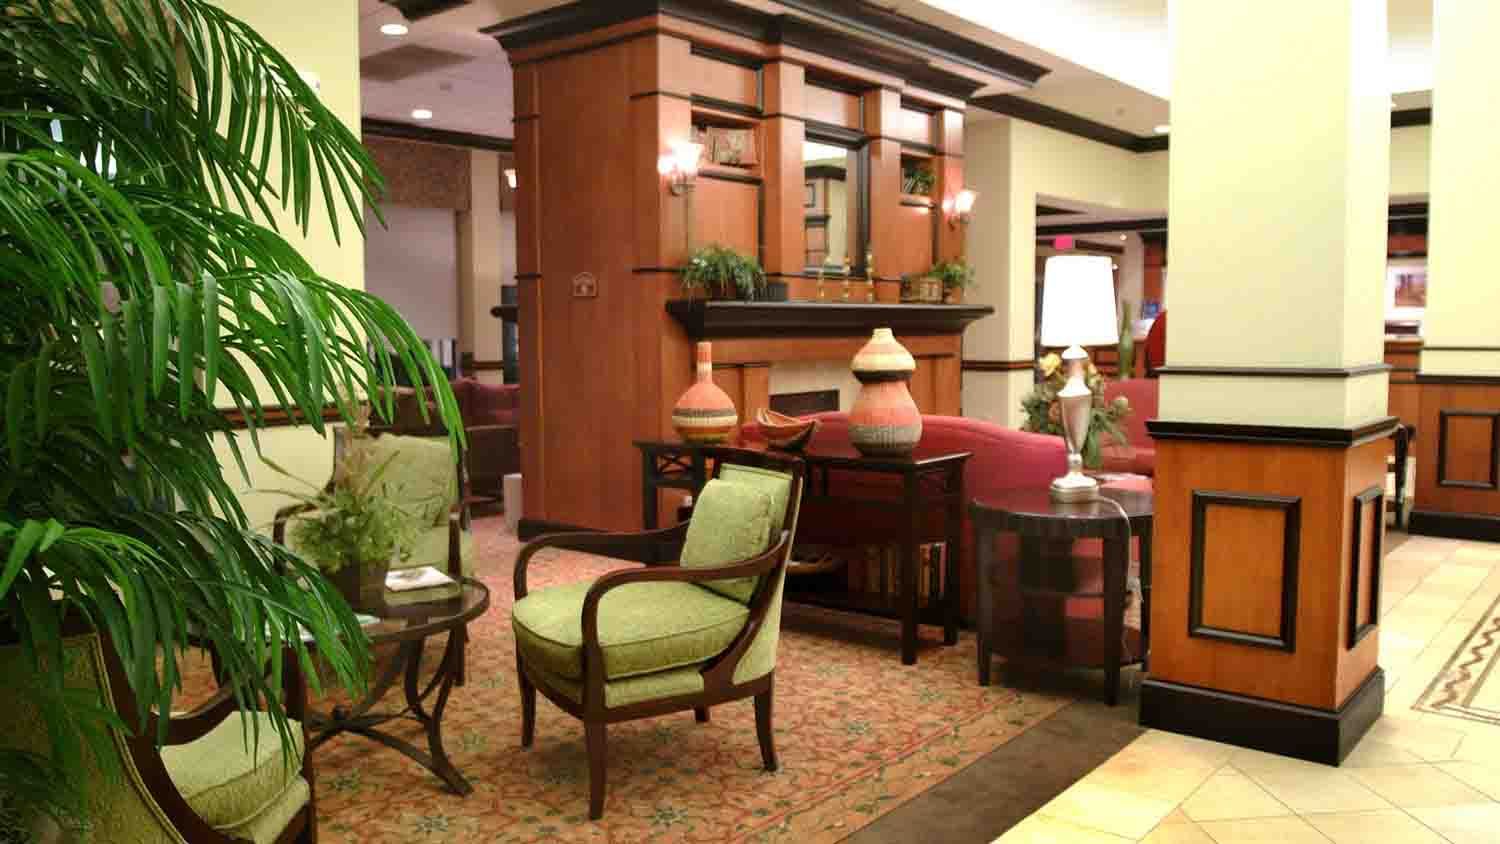 Hilton Garden Inn Indianapolis Northeast/Fishers 2